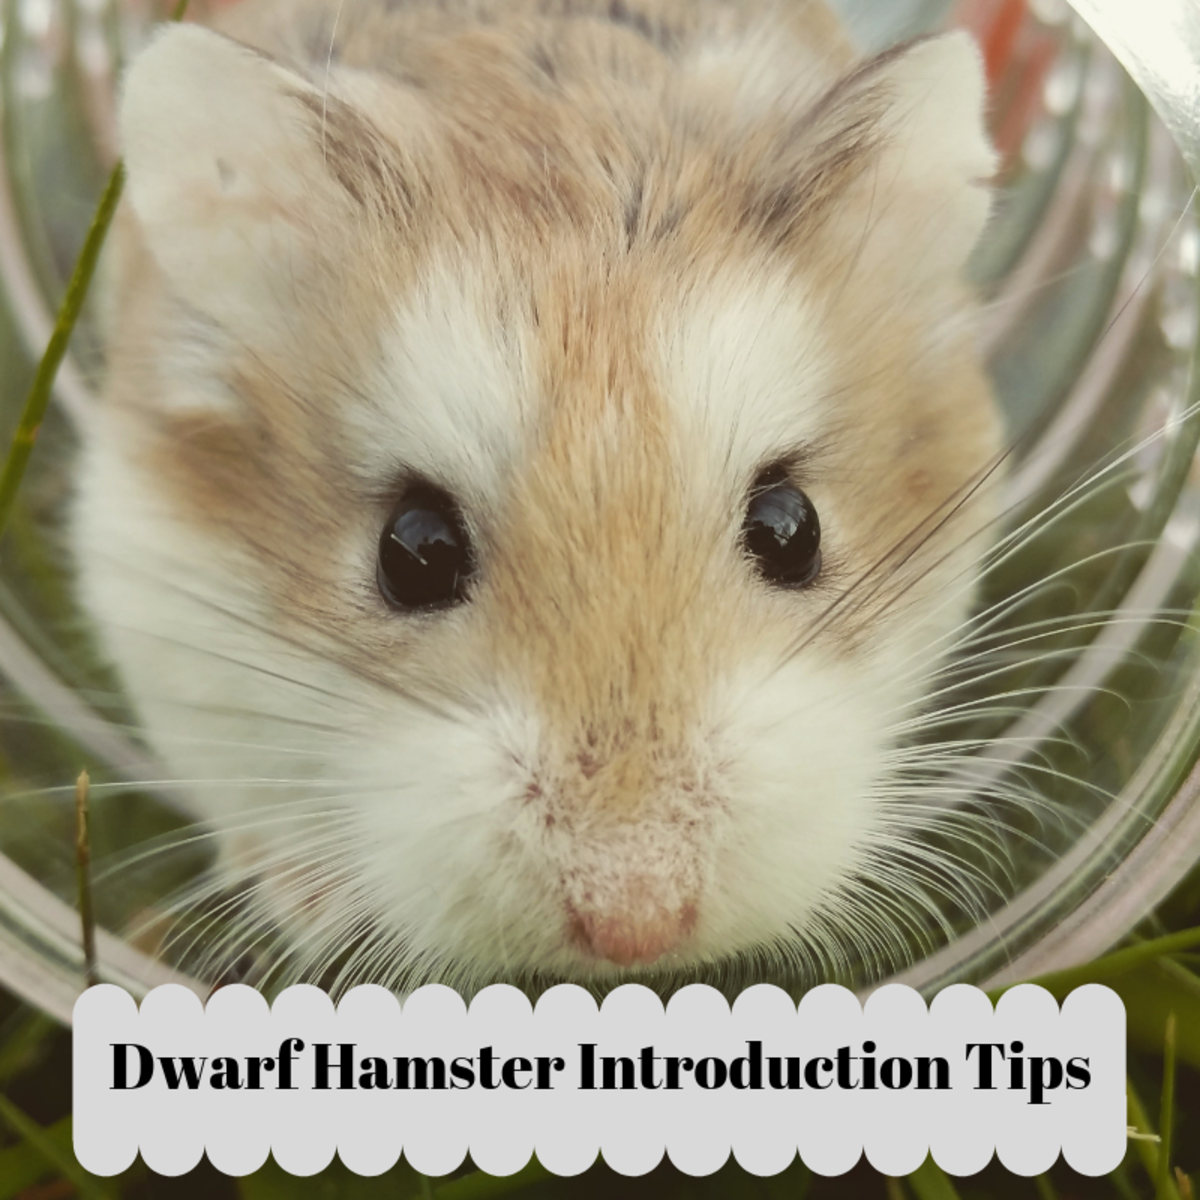 Introducing new hamsters is tricky. Follow this guide to ensure you do it safely!